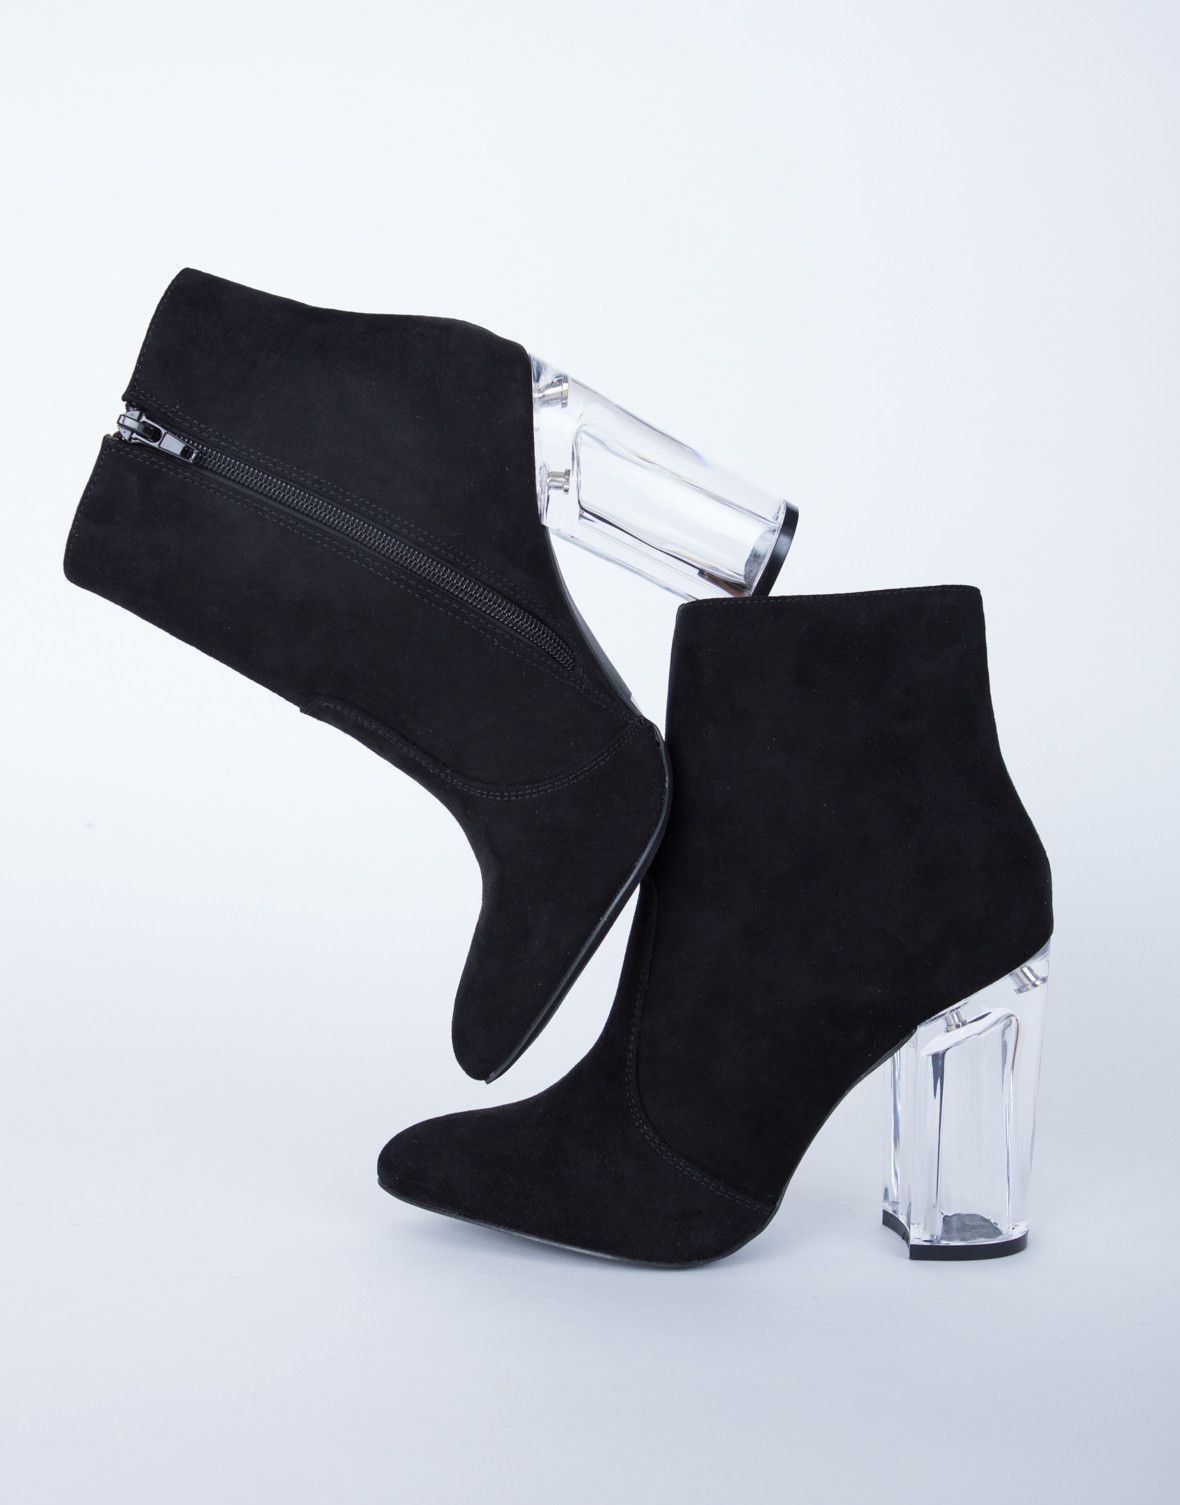 e9d161511b7 Featured  3 Looks to Slay 2017 Step out and make a statement this season in  our Clear Heel Boots! You will love this edgy and chic style.